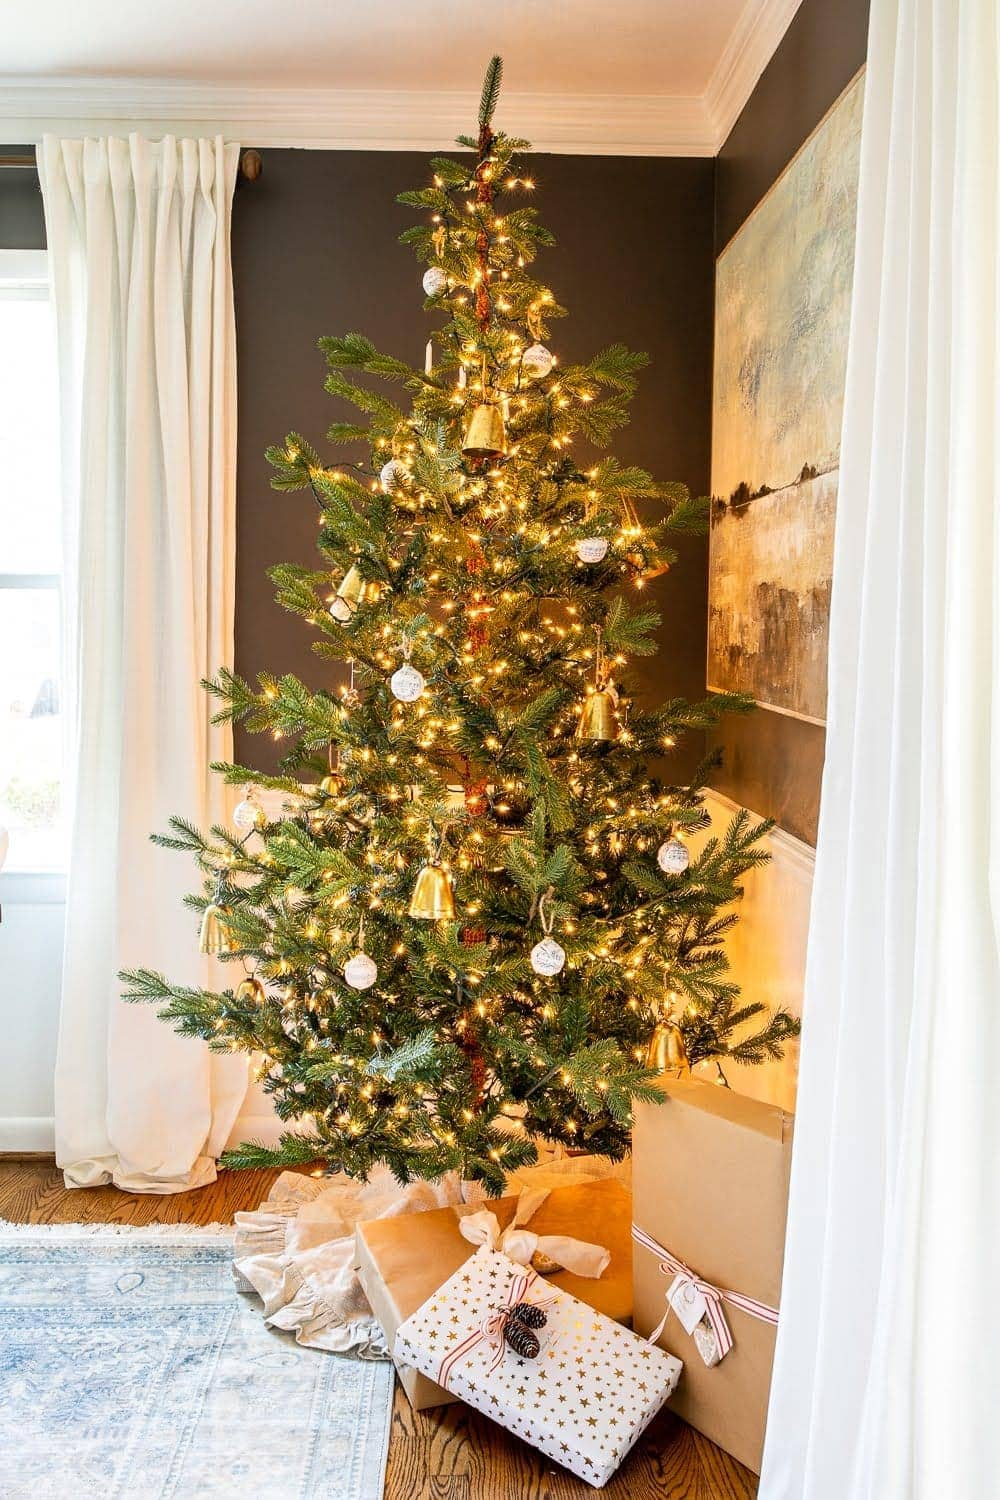 Christmas decor ideas | Christmas tree in a dining room